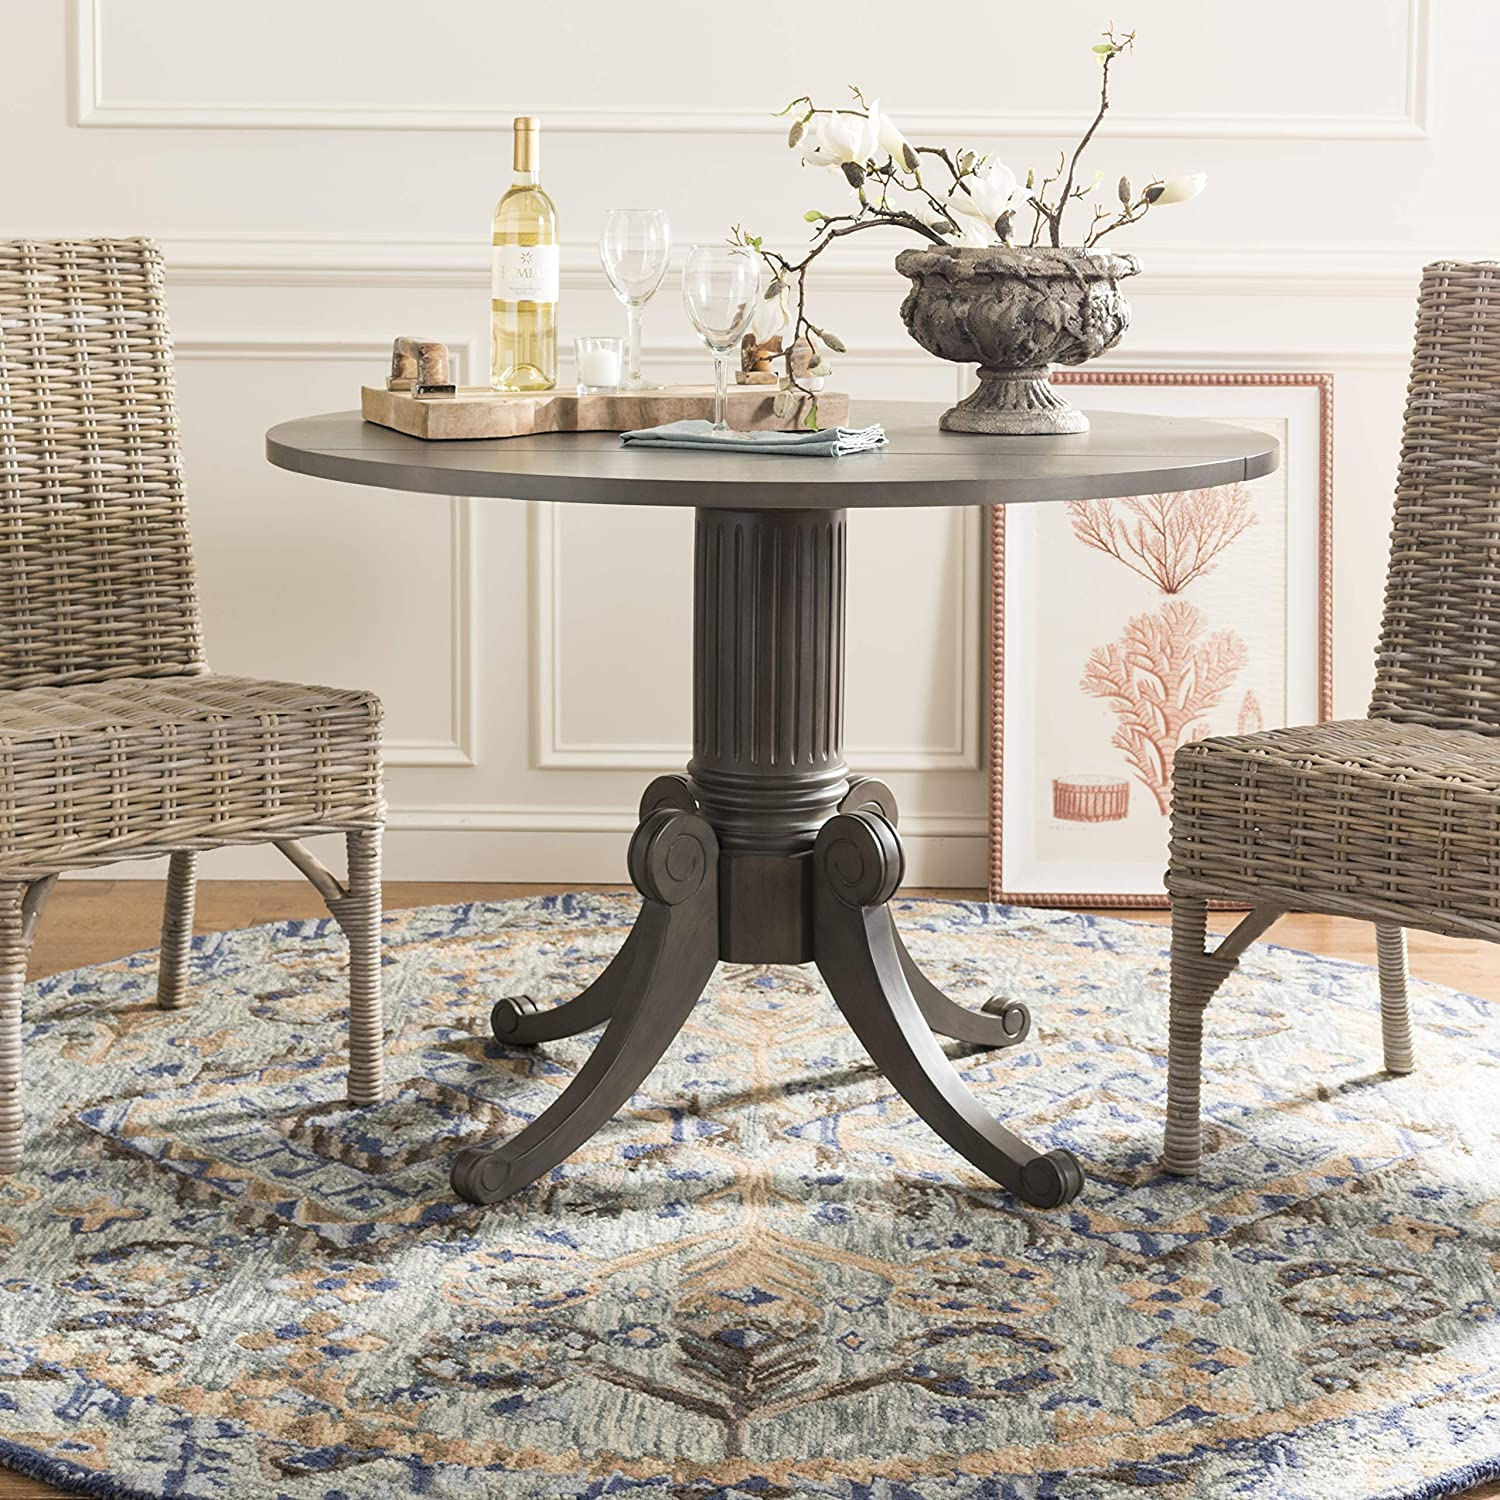 Safavieh Home Collection Forest Drop Leaf Dining Table Grey Wash